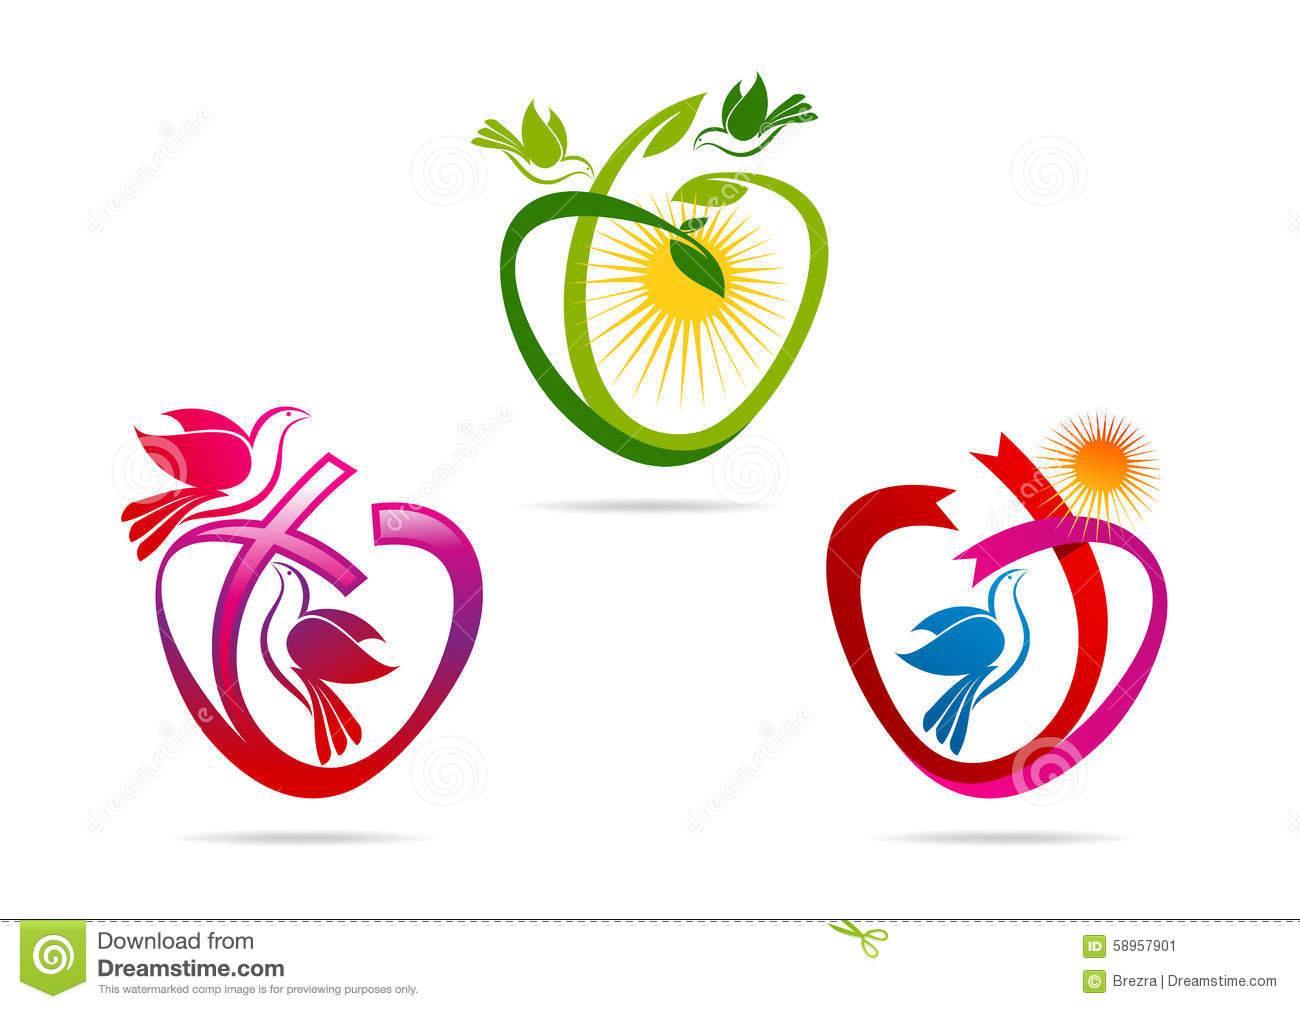 Sacred stock illustrations 36181 sacred stock illustrations green heart logolove shape ribbon with dove symbol pigeon spiritual sacred icon biocorpaavc Gallery